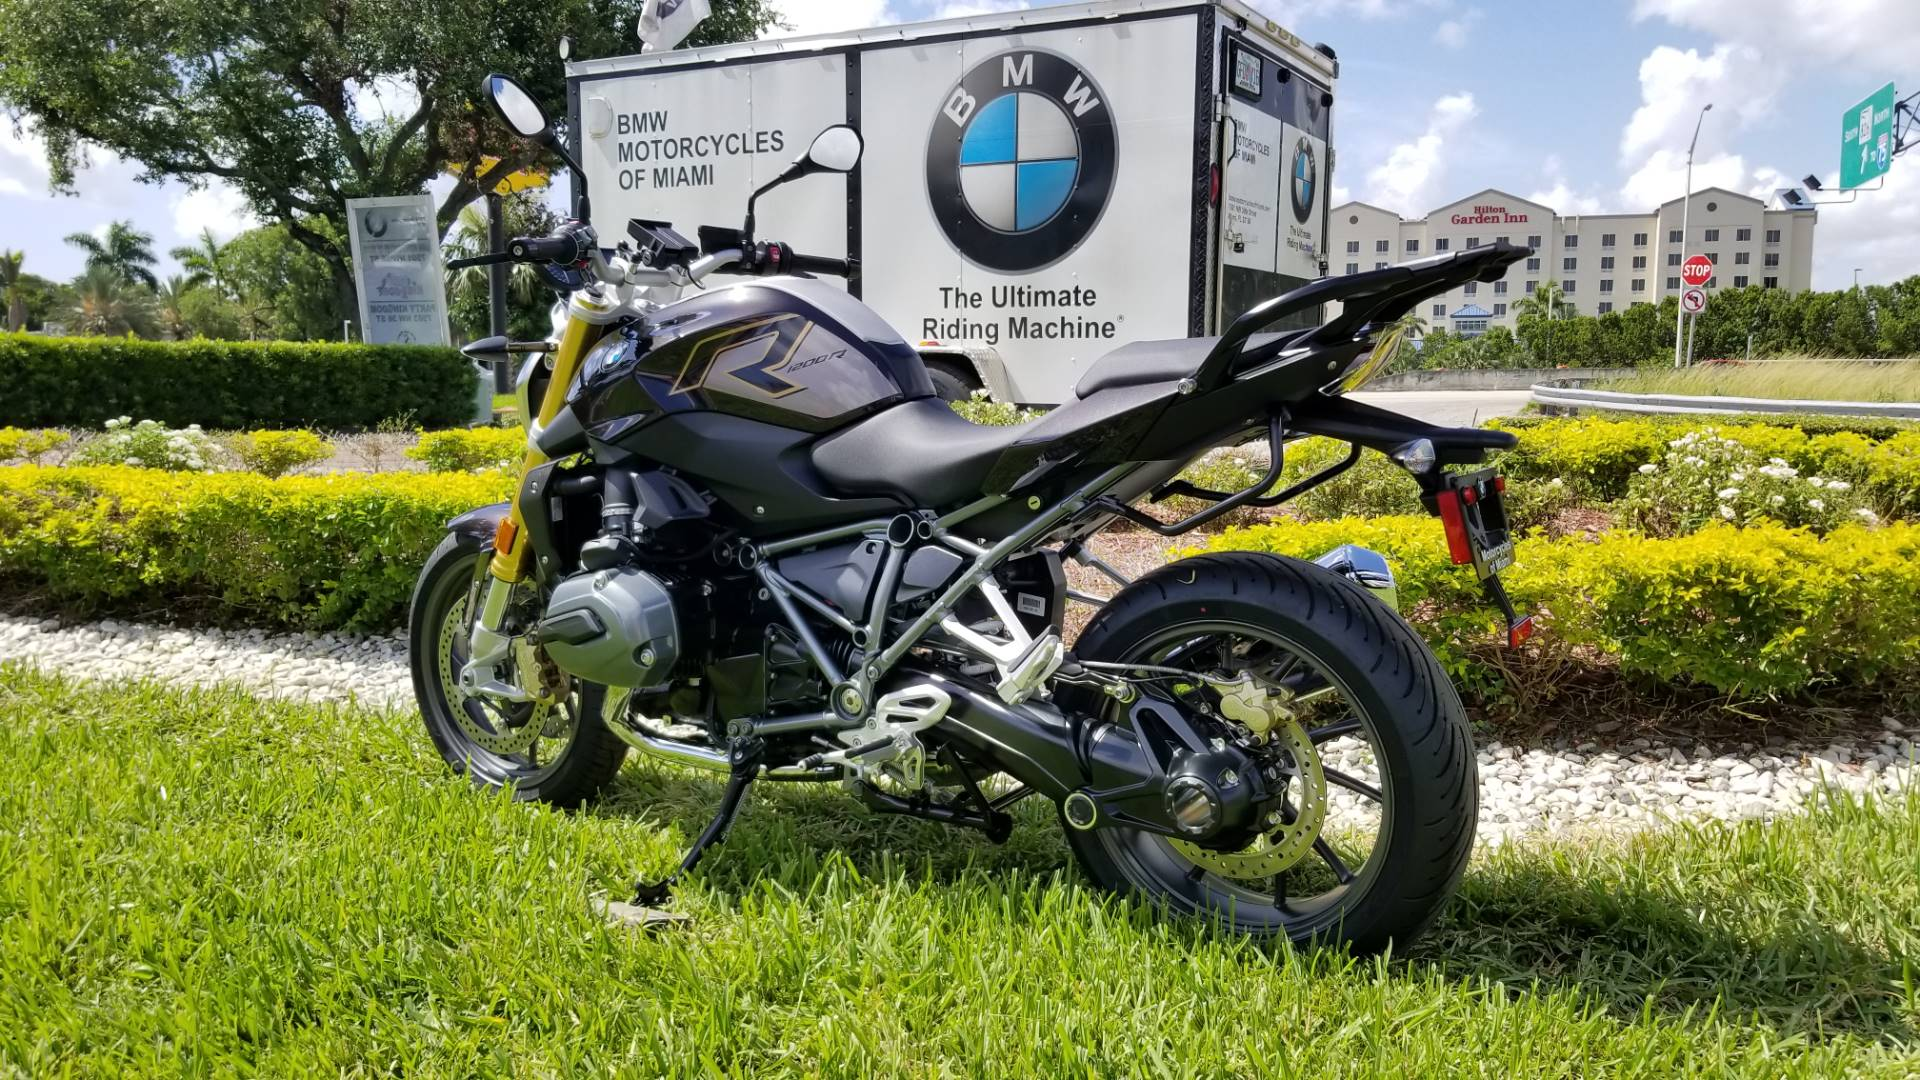 New 2018 BMW R 1200 R For Sale, BMW R 1200R For Sale, BMW Motorcycle R1200R, new BMW Roadster, BMW Naked, BMW.